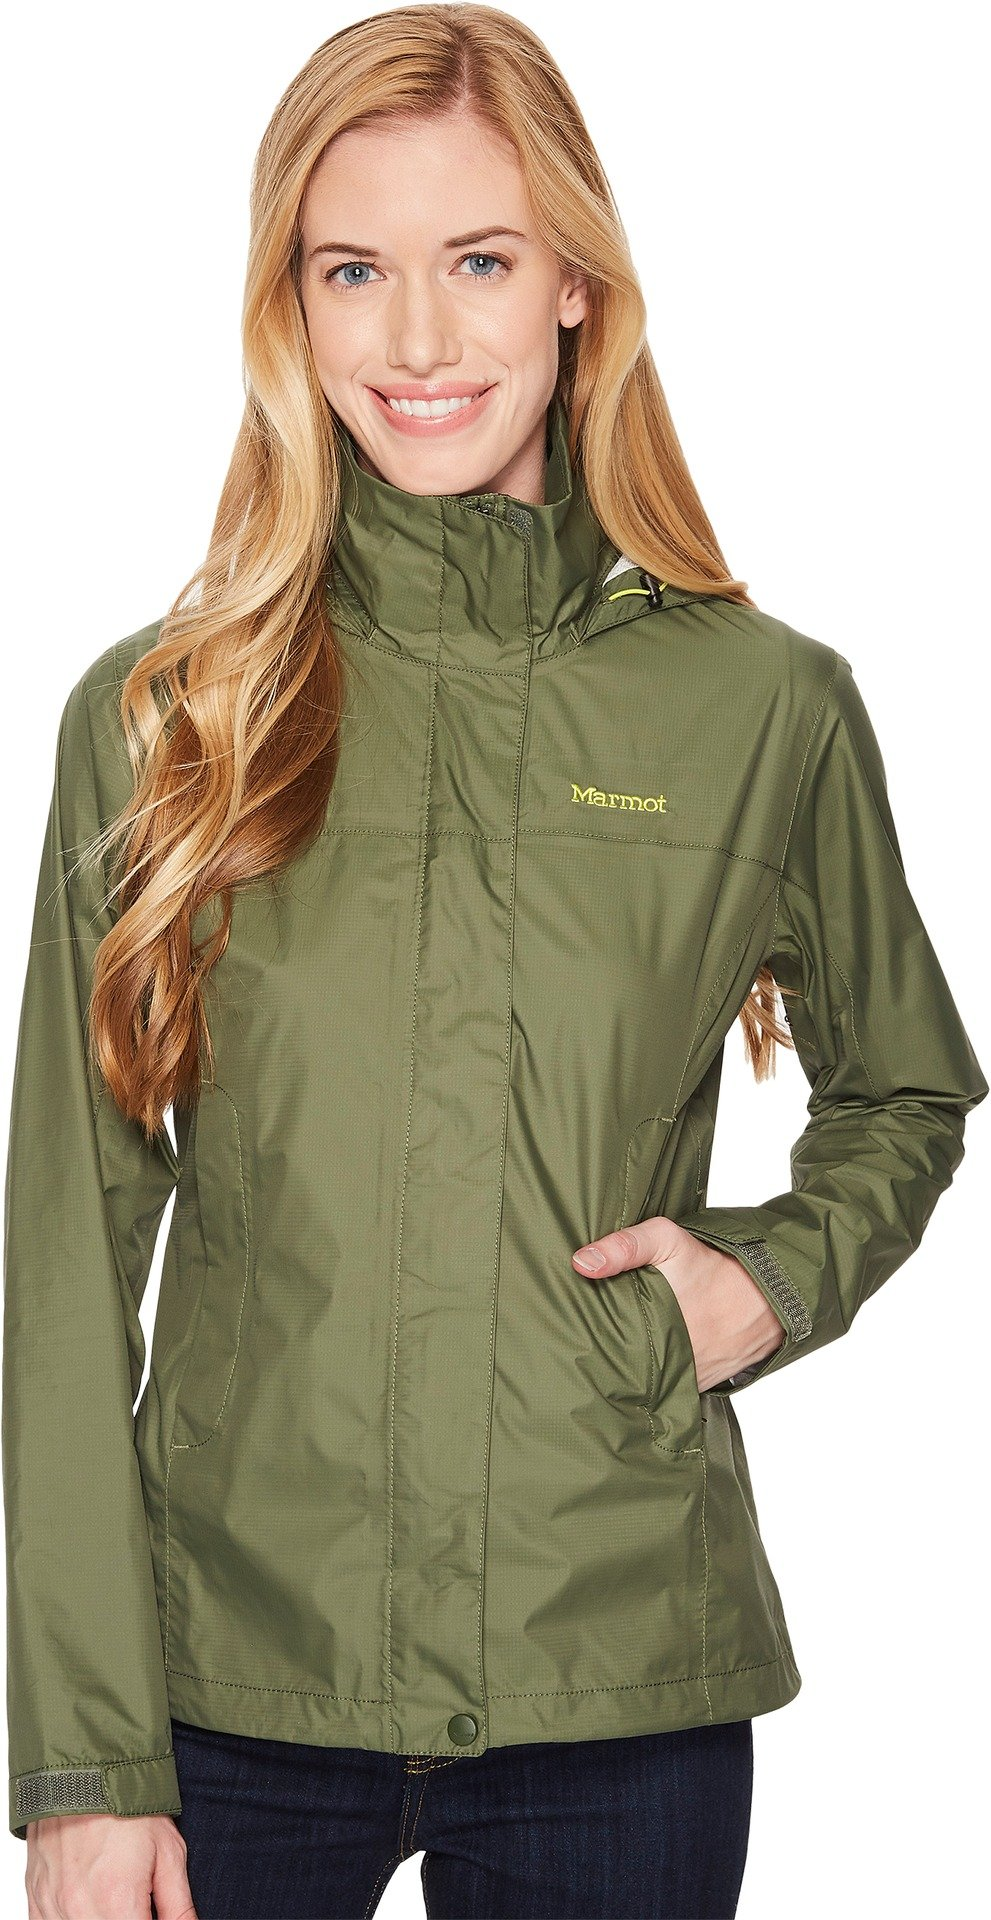 Marmot Women's PreCip Jacket Crocodile XX-Large